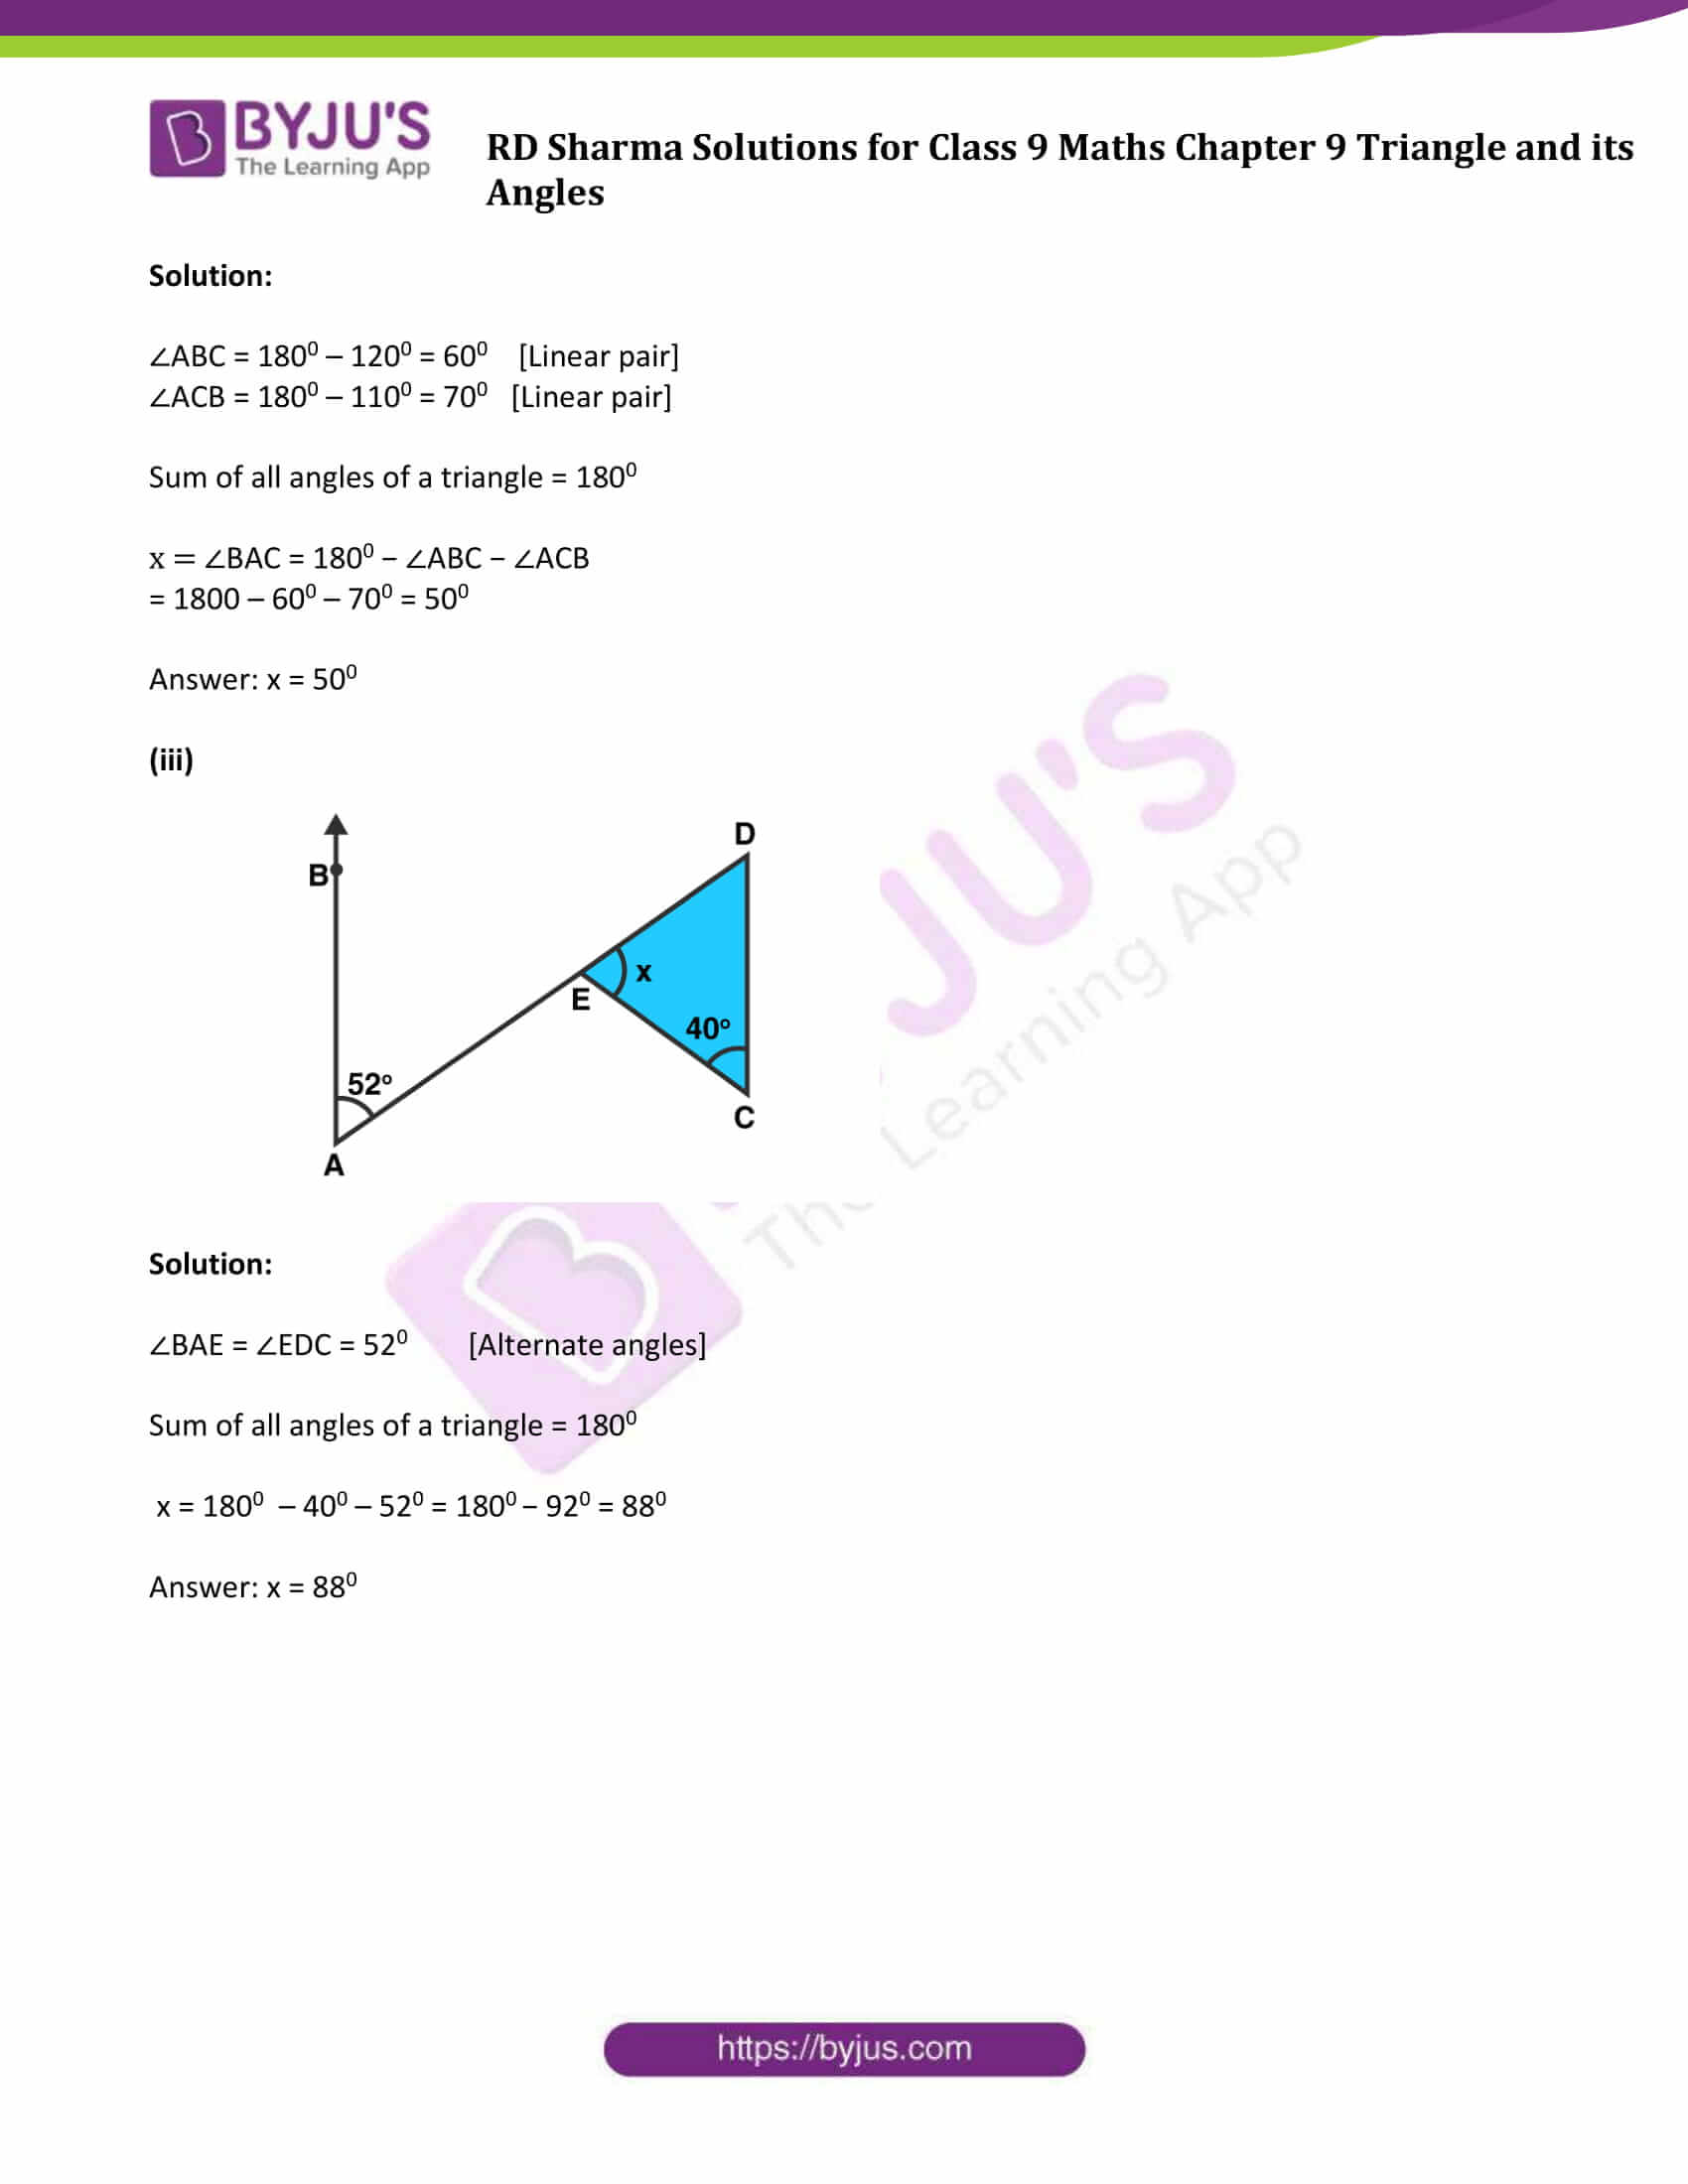 RD Sharma Solution class 9 Maths Chapter 9 Triangle and its Angles 08